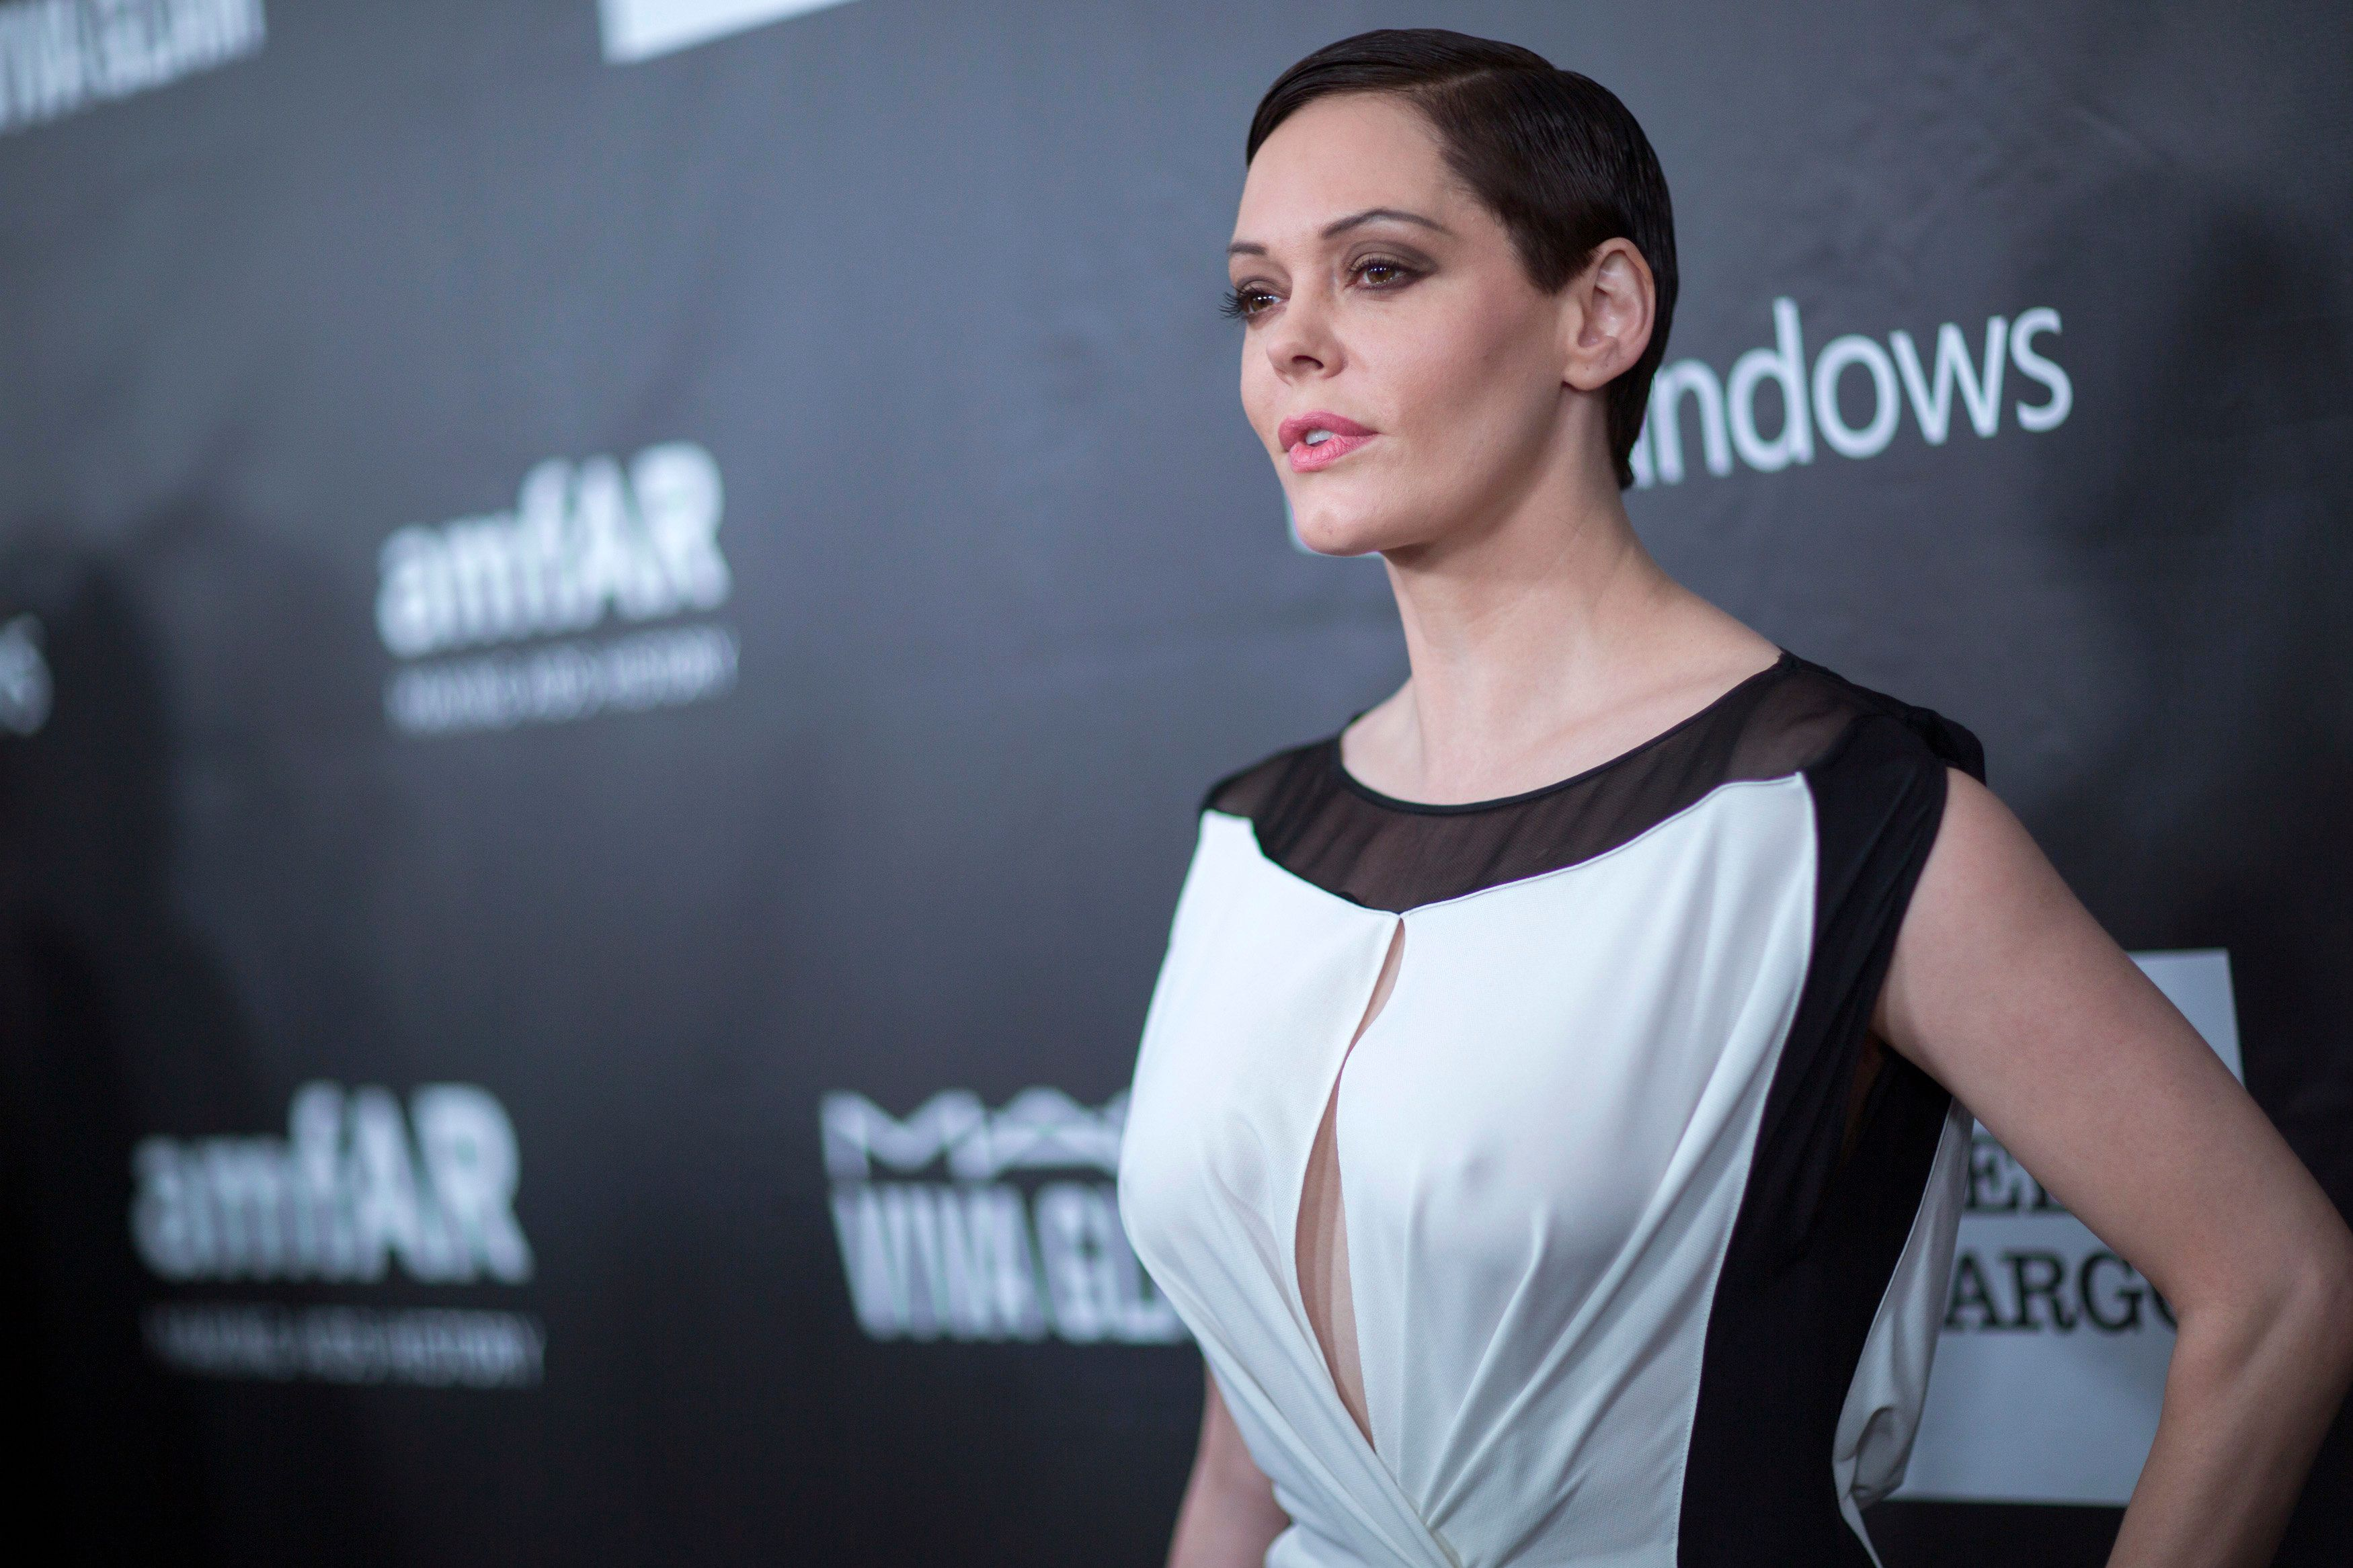 Twitter restores account of actress Rose McGowan